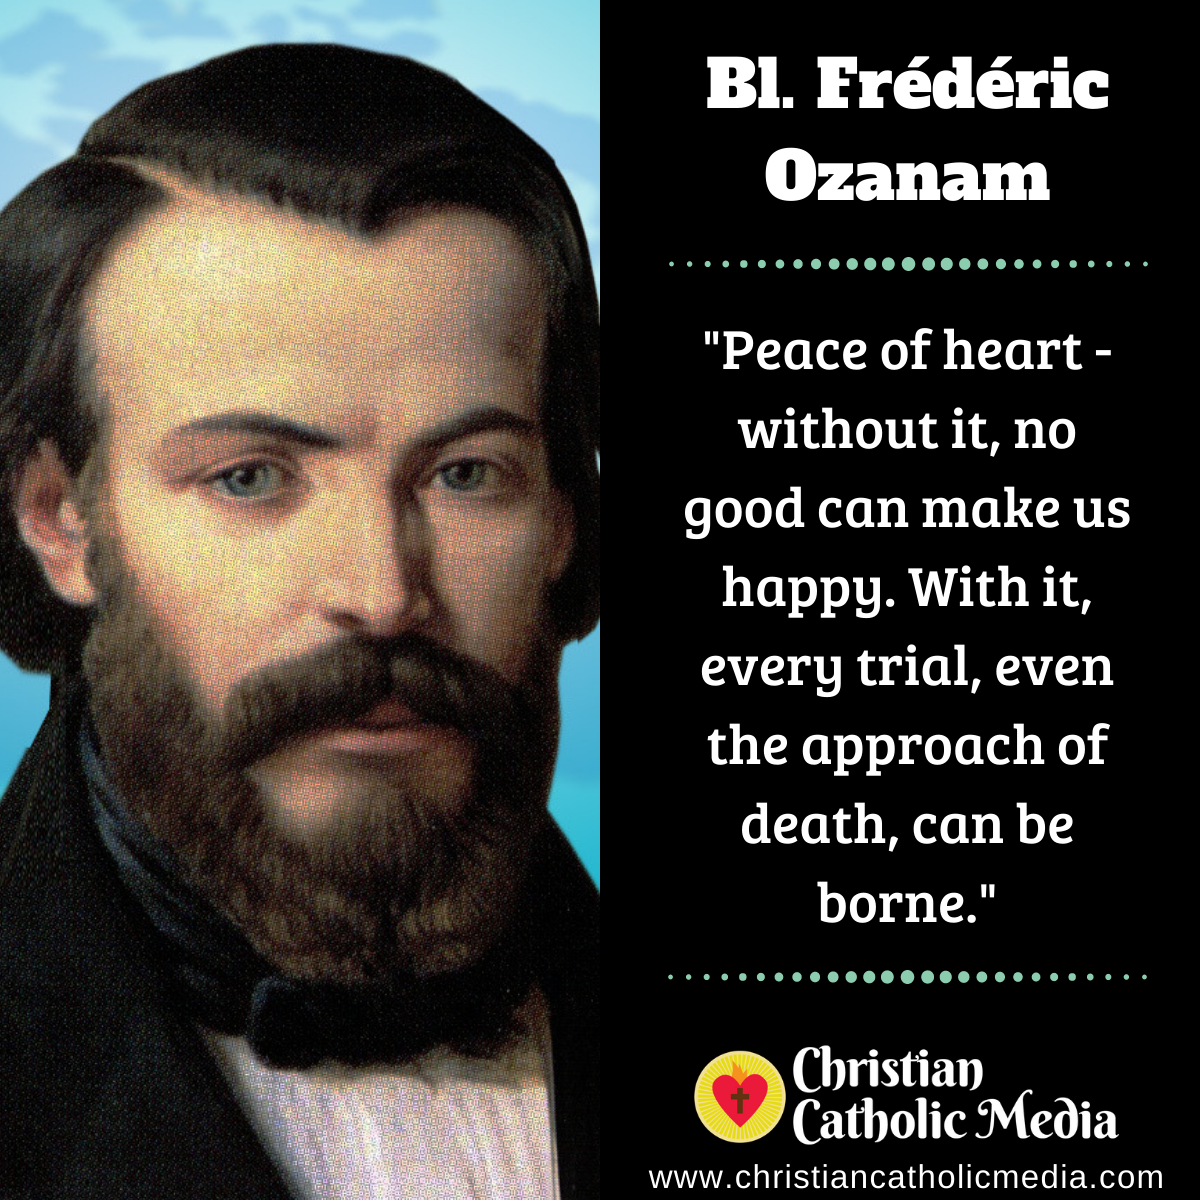 Bl. Frédéric Ozanam - Monday September 7, 2020